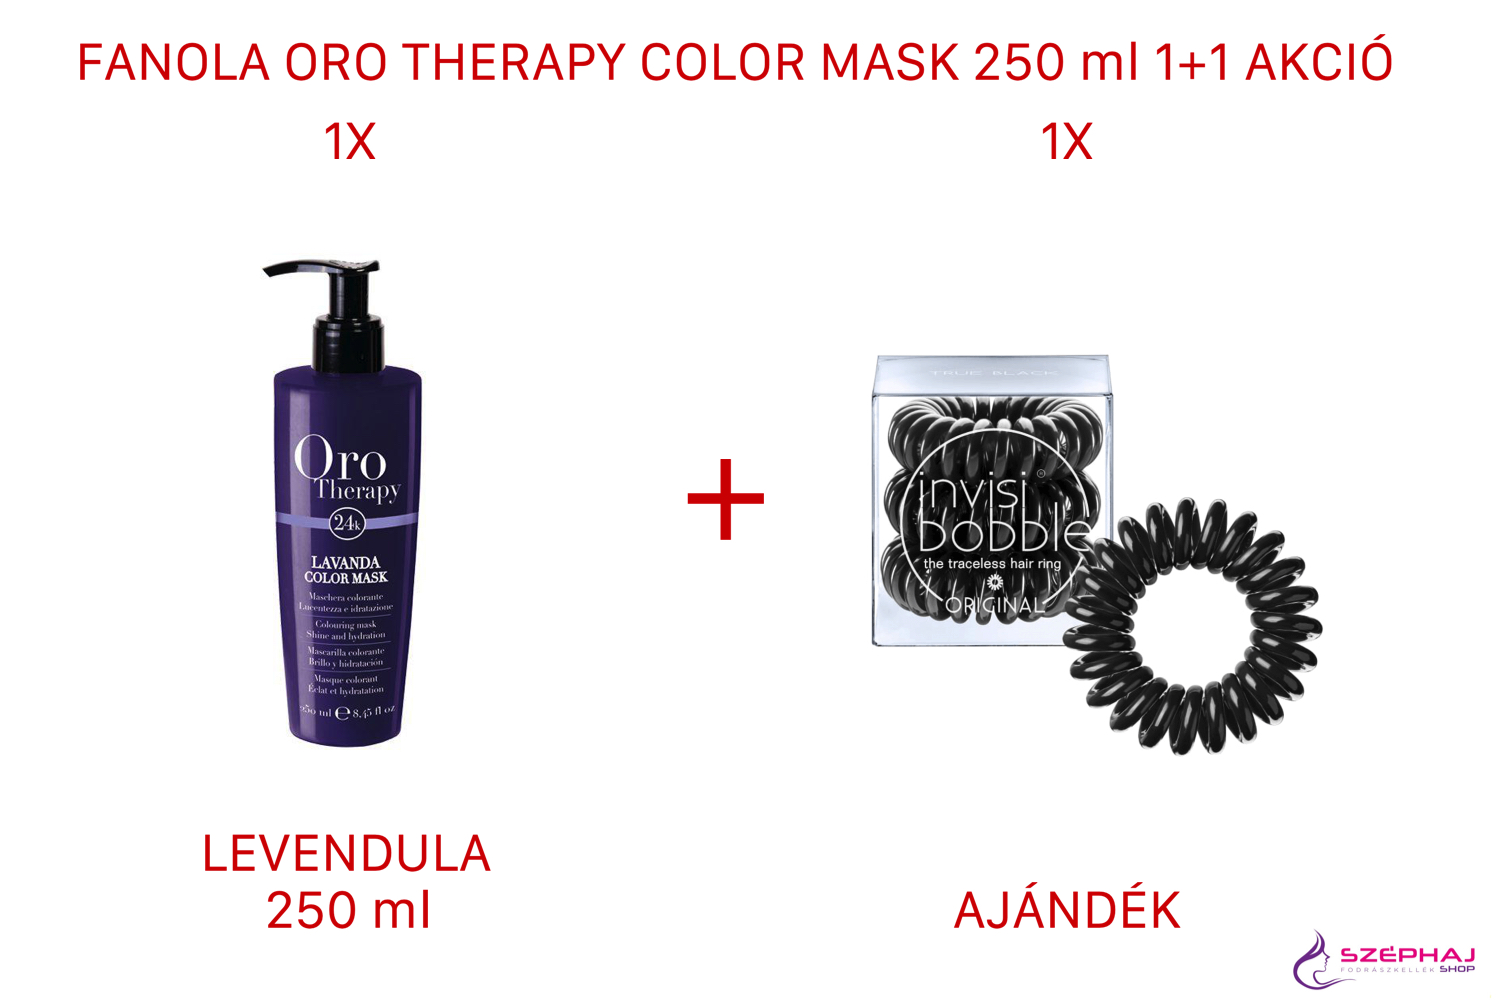 FANOLA Oro Therapy Color Mask 250 ml (LEVENDULA) 1+1 AKCIÓ